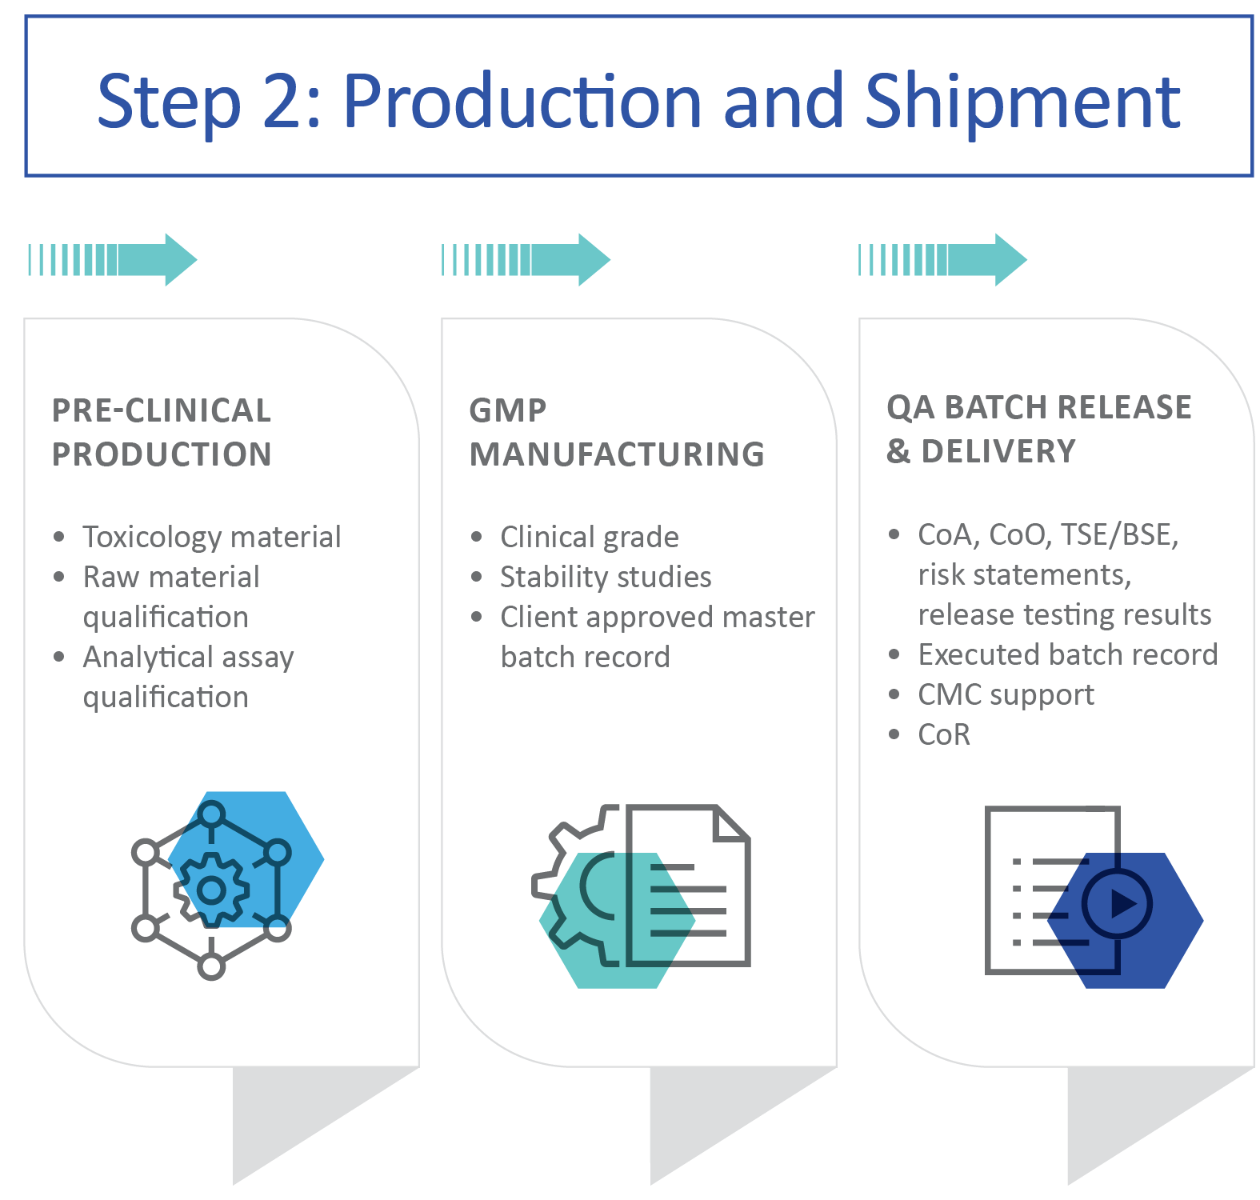 Image of a chart that demonstrates the process flow of the secondary steps in a GMP project.